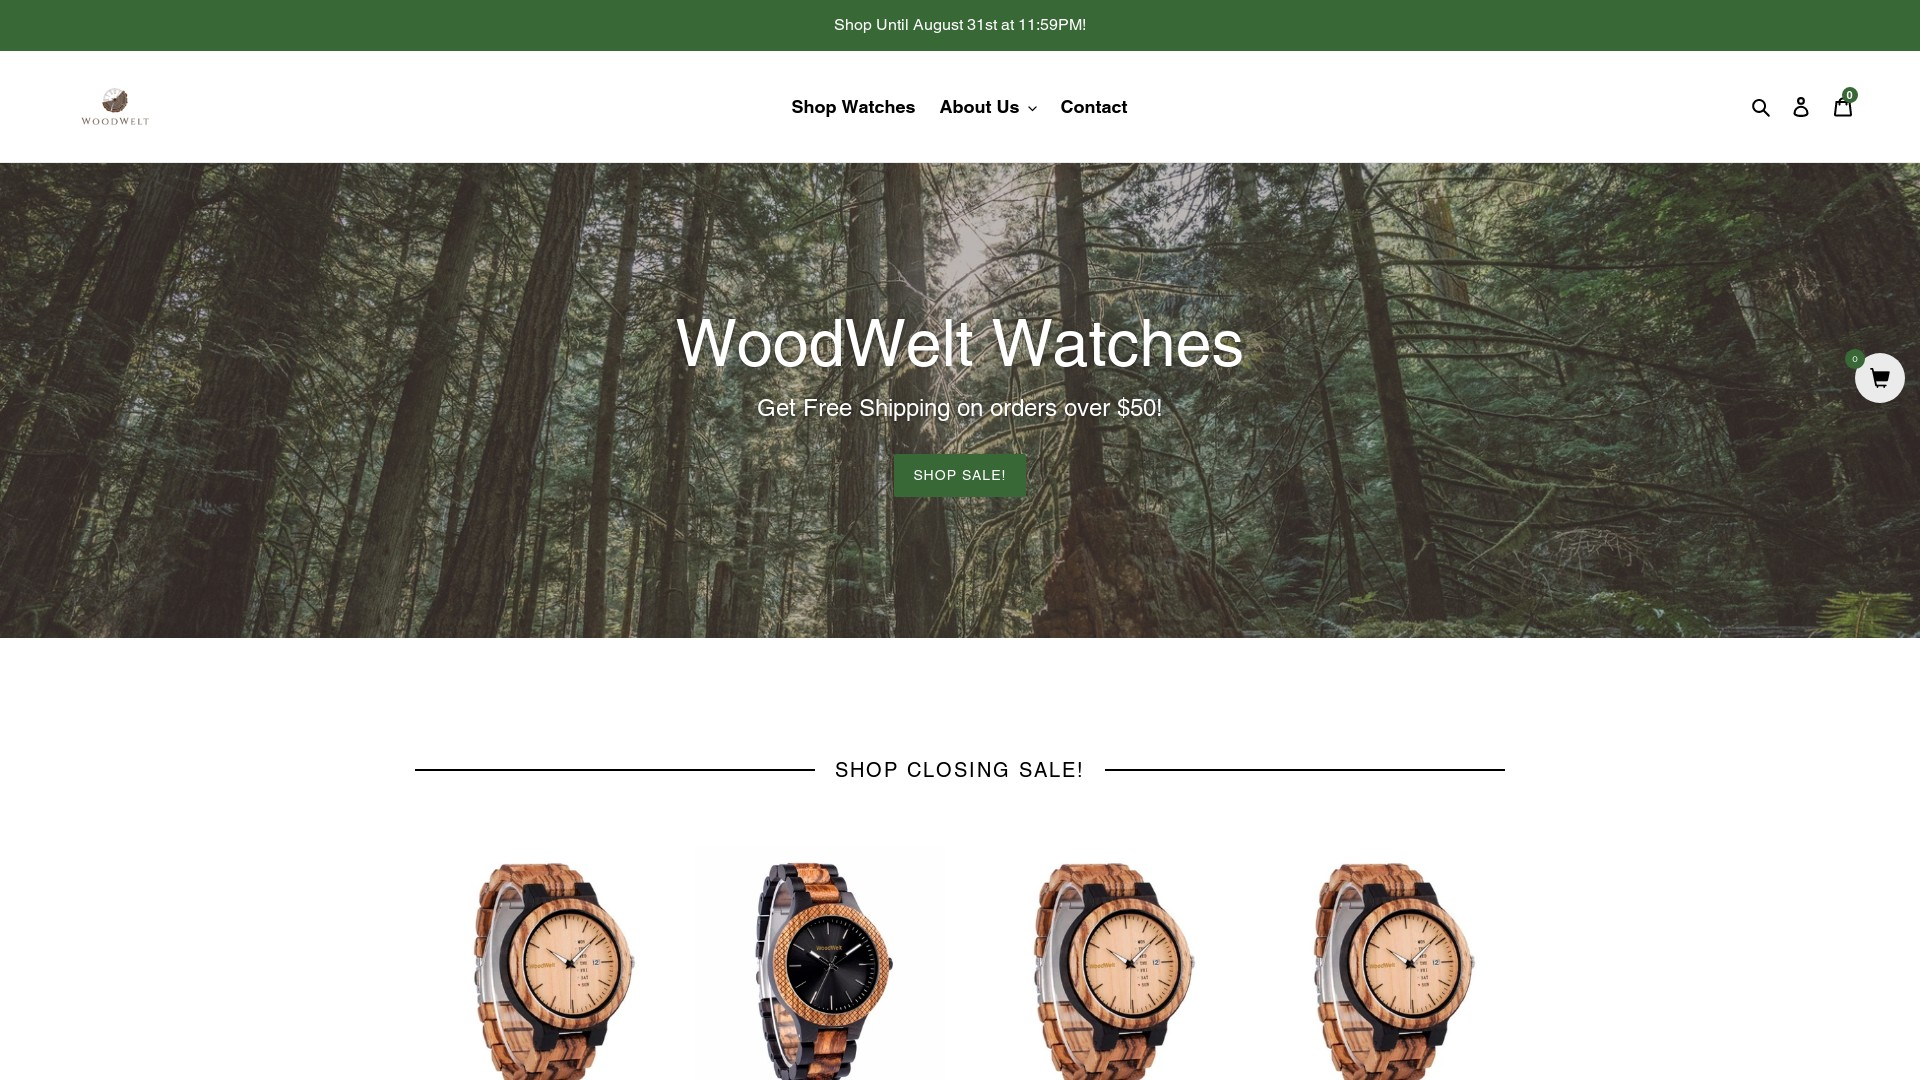 Is Woodwelt Watches a Scam or is it Legit?